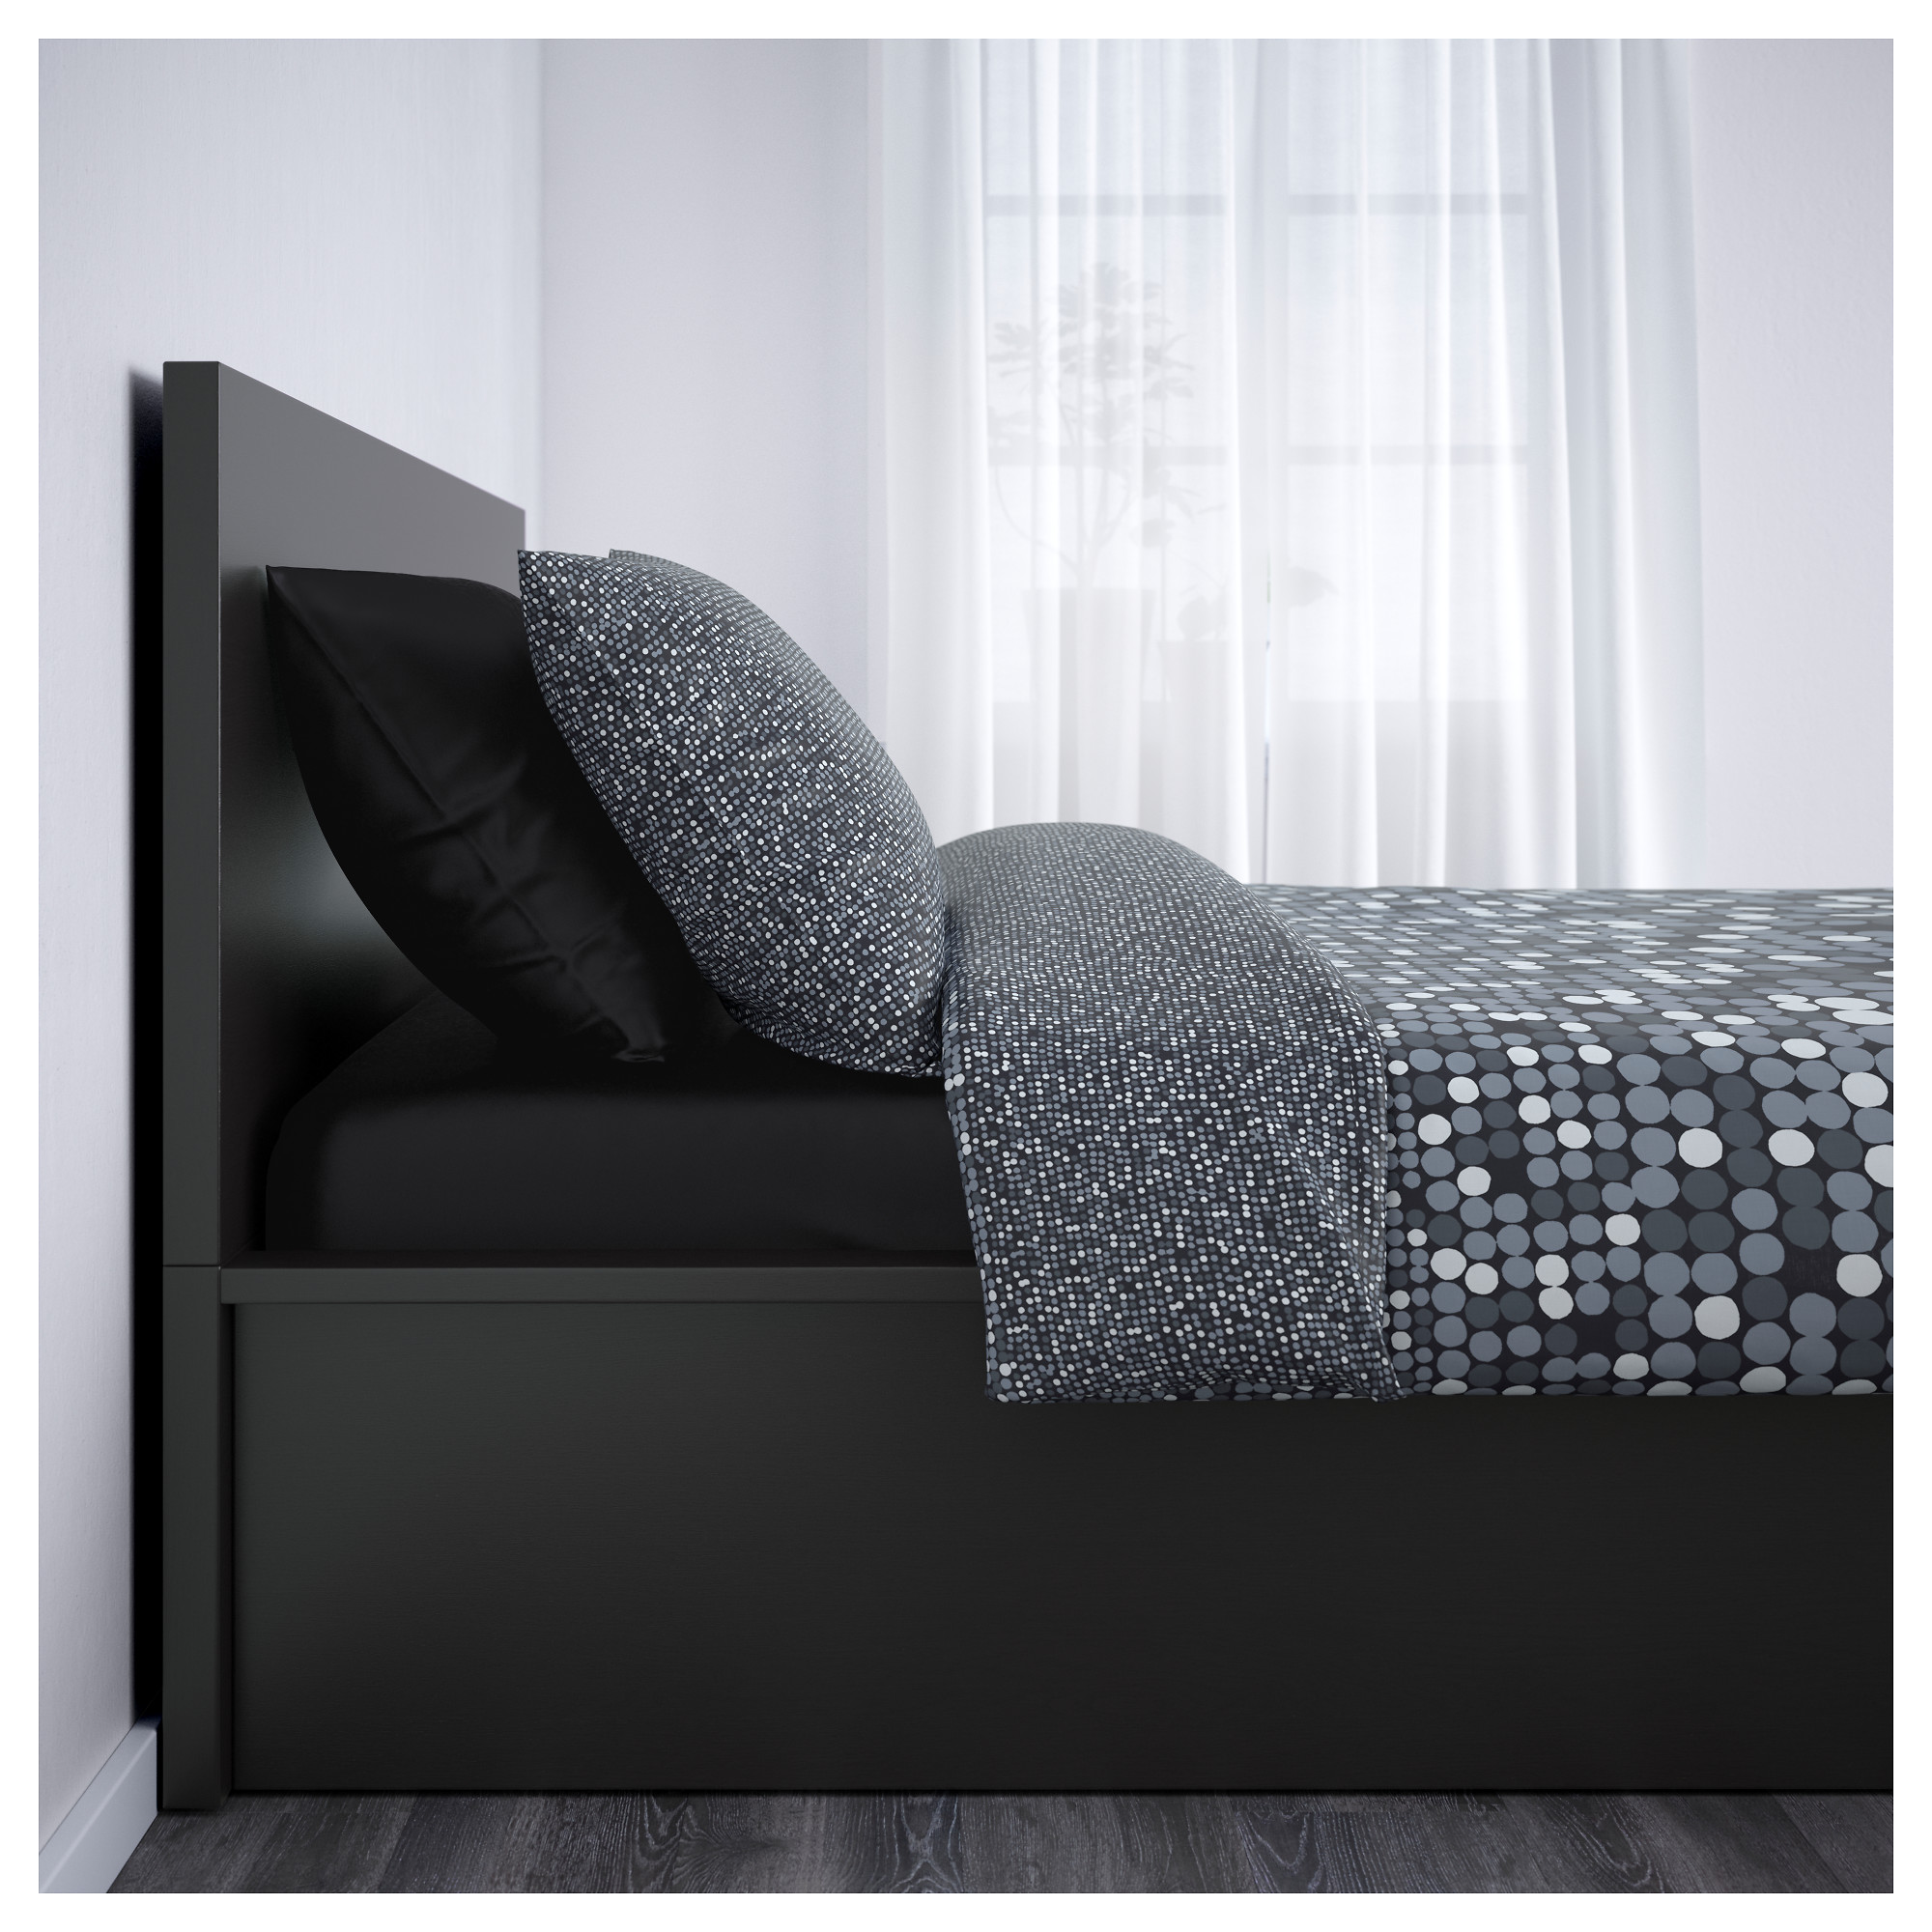 lit 100x190 ikea boulogne billancourt boulogne billancourt garcon surprenant with lit 100x190. Black Bedroom Furniture Sets. Home Design Ideas